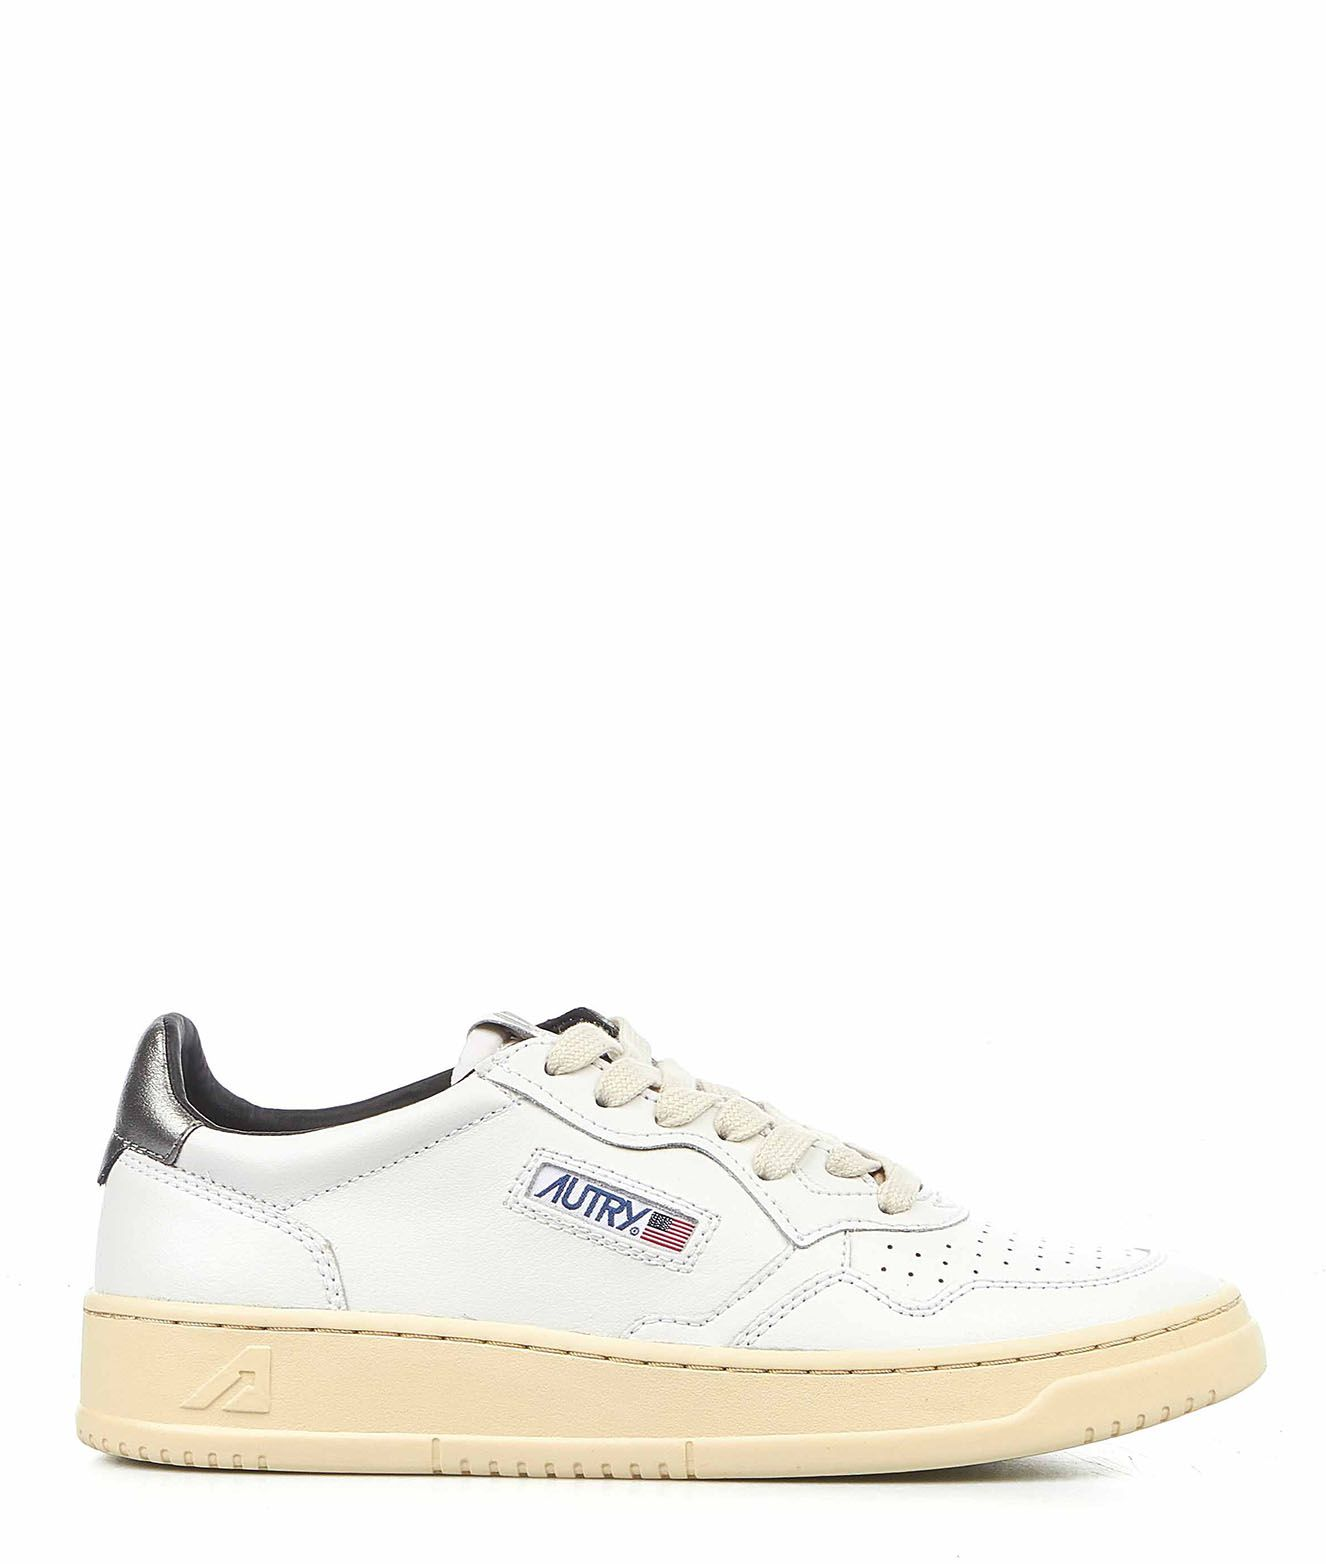 Autry Shoes Sneakers 'Aulw'